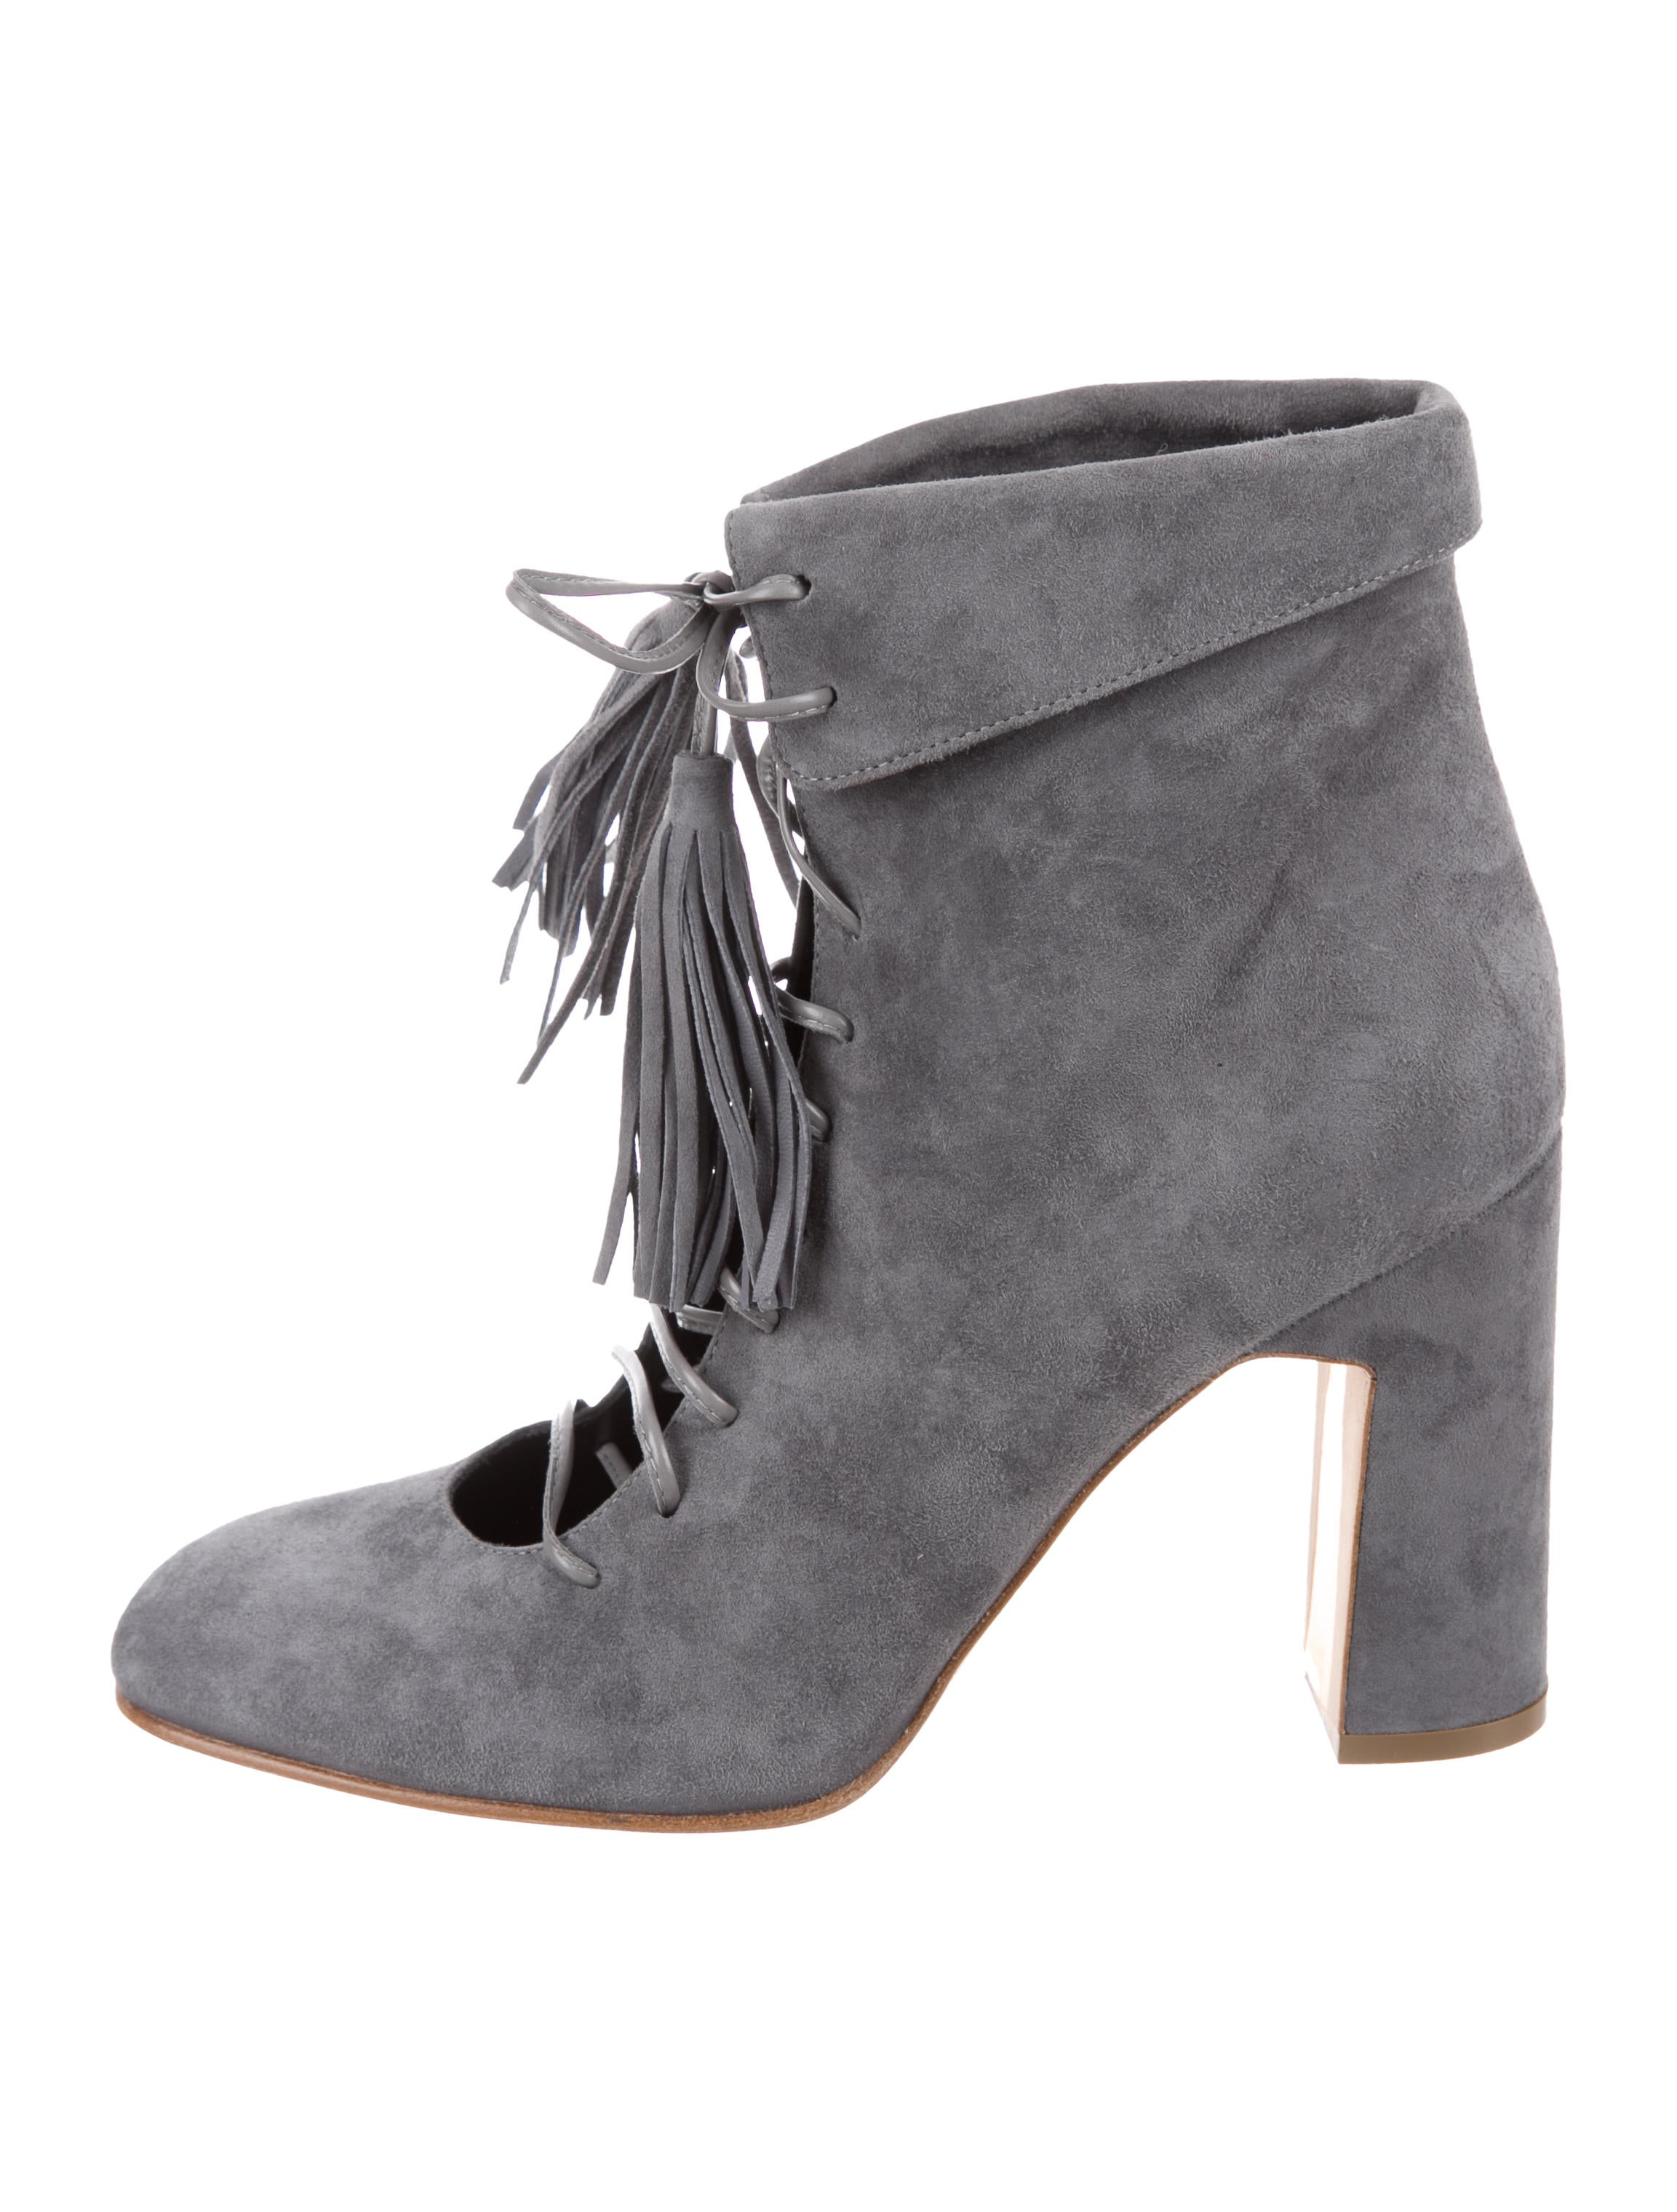 Rupert Sanderson Northcote Lace-Up Boots w/ Tags cheap best sale 2014 new sale online clearance ebay wkQvKIld